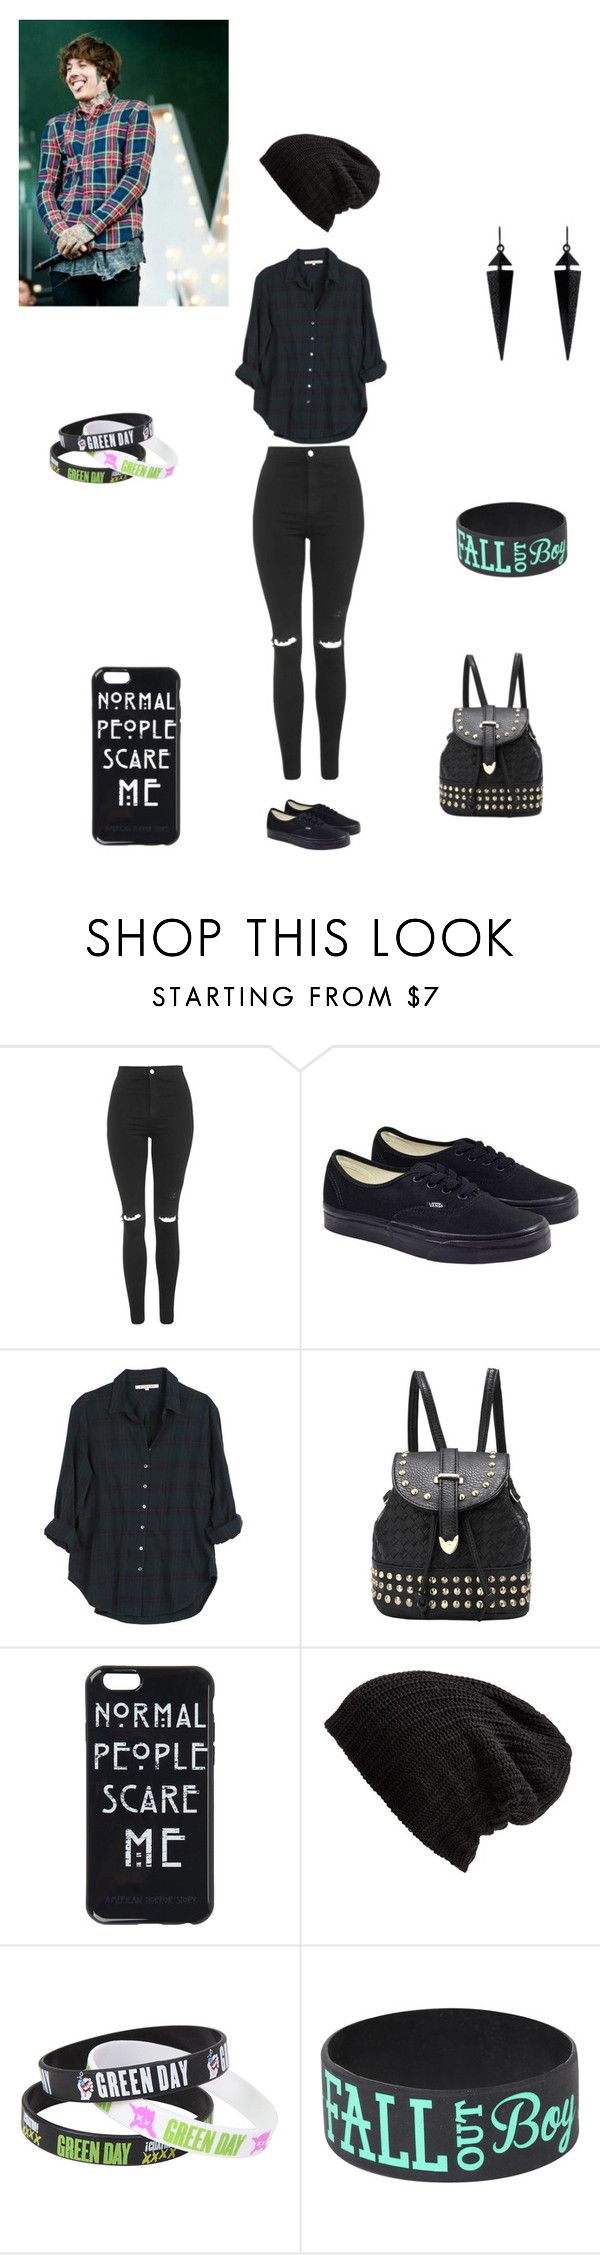 """Date with Oli"" by roxas-lightwood ❤ liked on Polyvore featuring Topshop, Vans, Xirena, Free People, Oasis and Sykes"